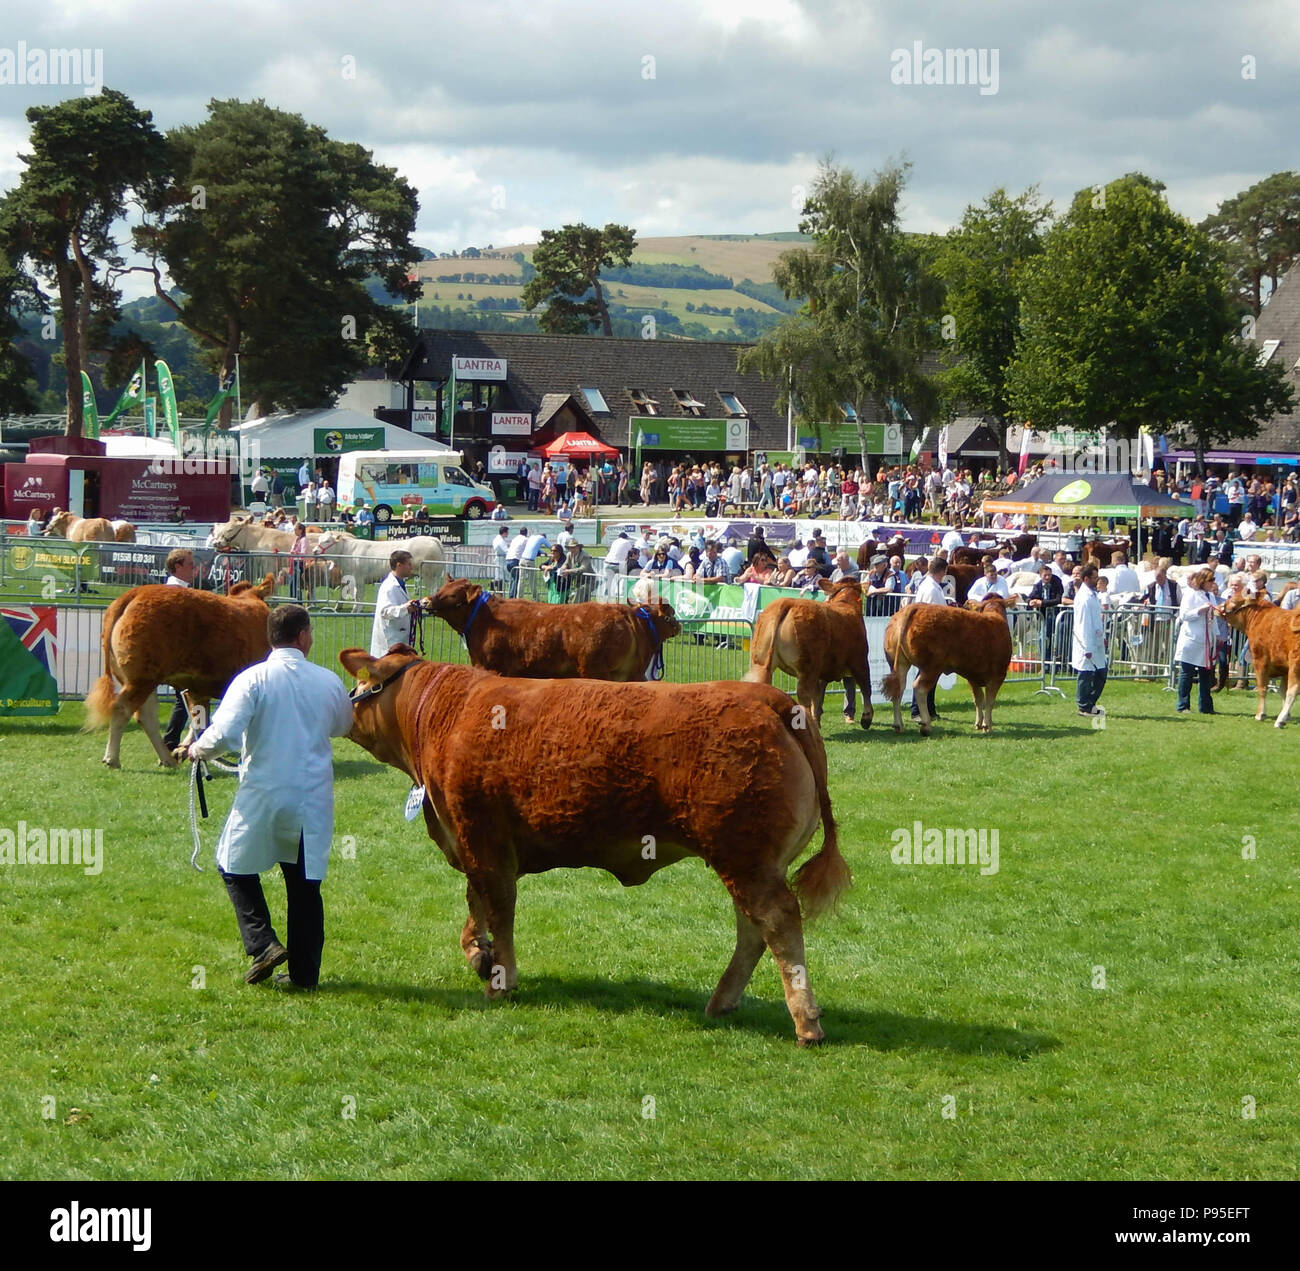 Beef cattle being judged on the showground of the Royal Welsh Show in Builth Wells, Wales. It is one of Europe's biggest agricultural events - Stock Image